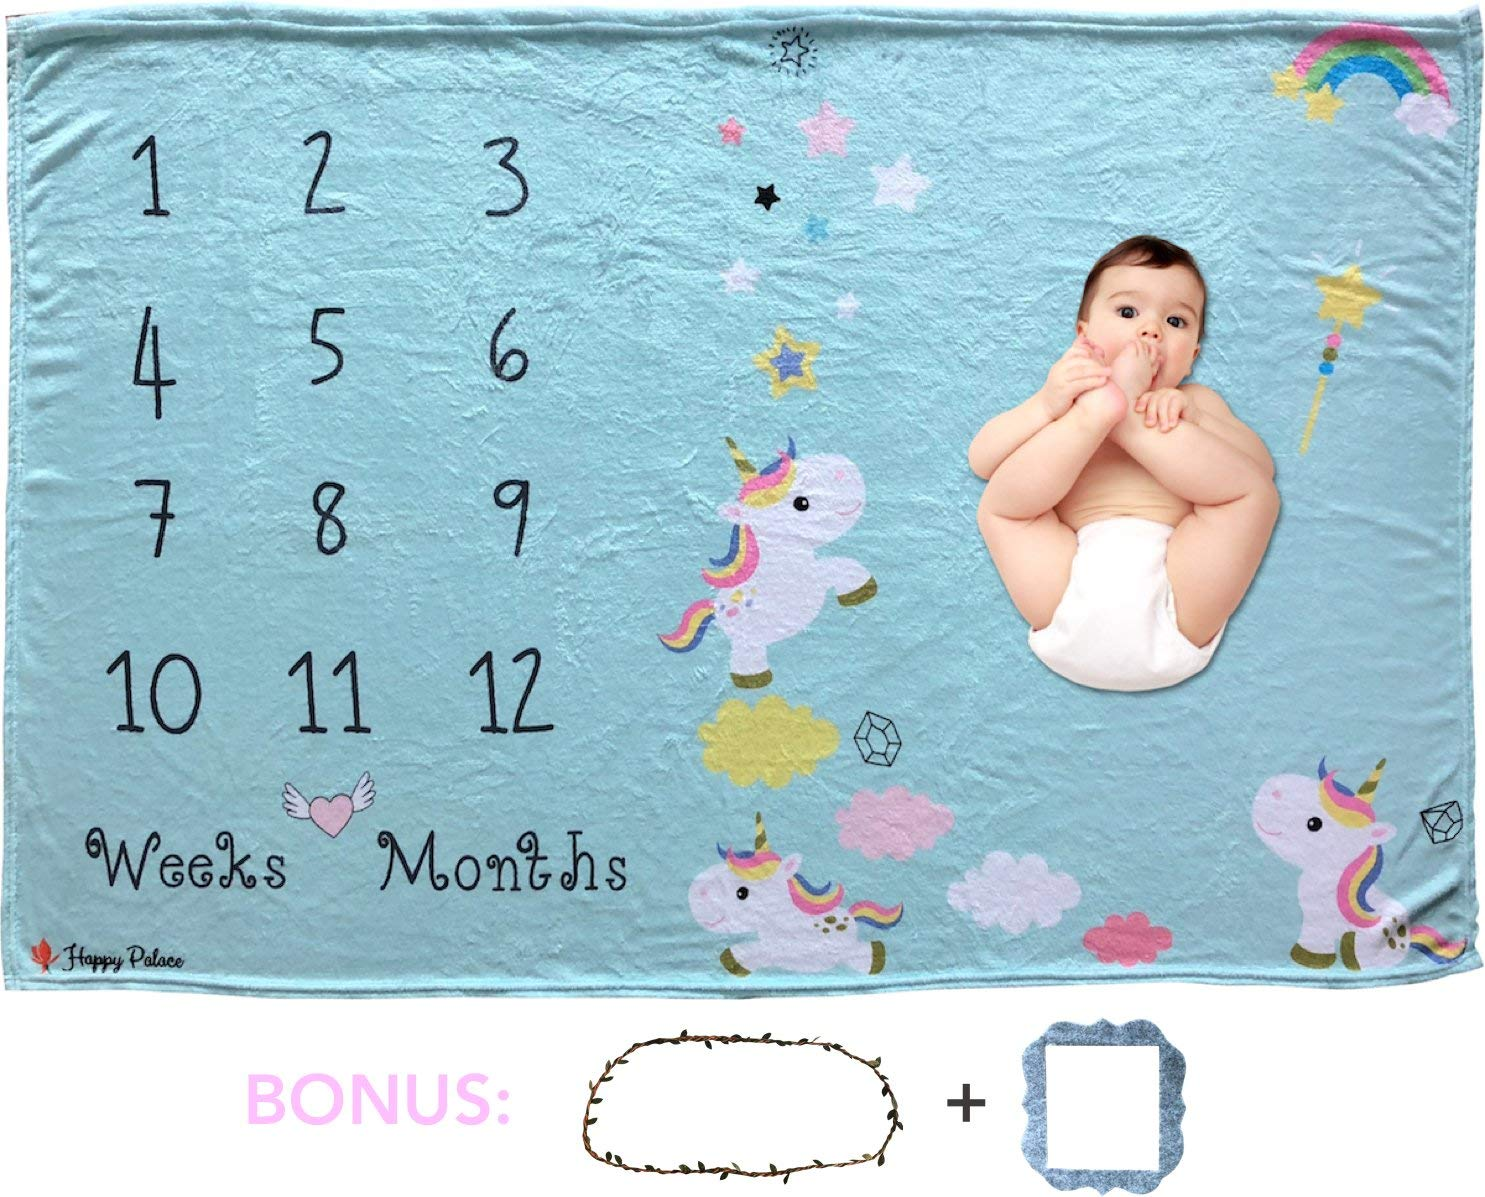 "Happy Palace Adorable Weekly Monthly Baby Milestone Blanket (Floral Wreath and Frame Included) | Cute Photo Backdrop and Prop for Newborn Boy and Girl, for New Mom | Premium Fleece Large 60""x40"""